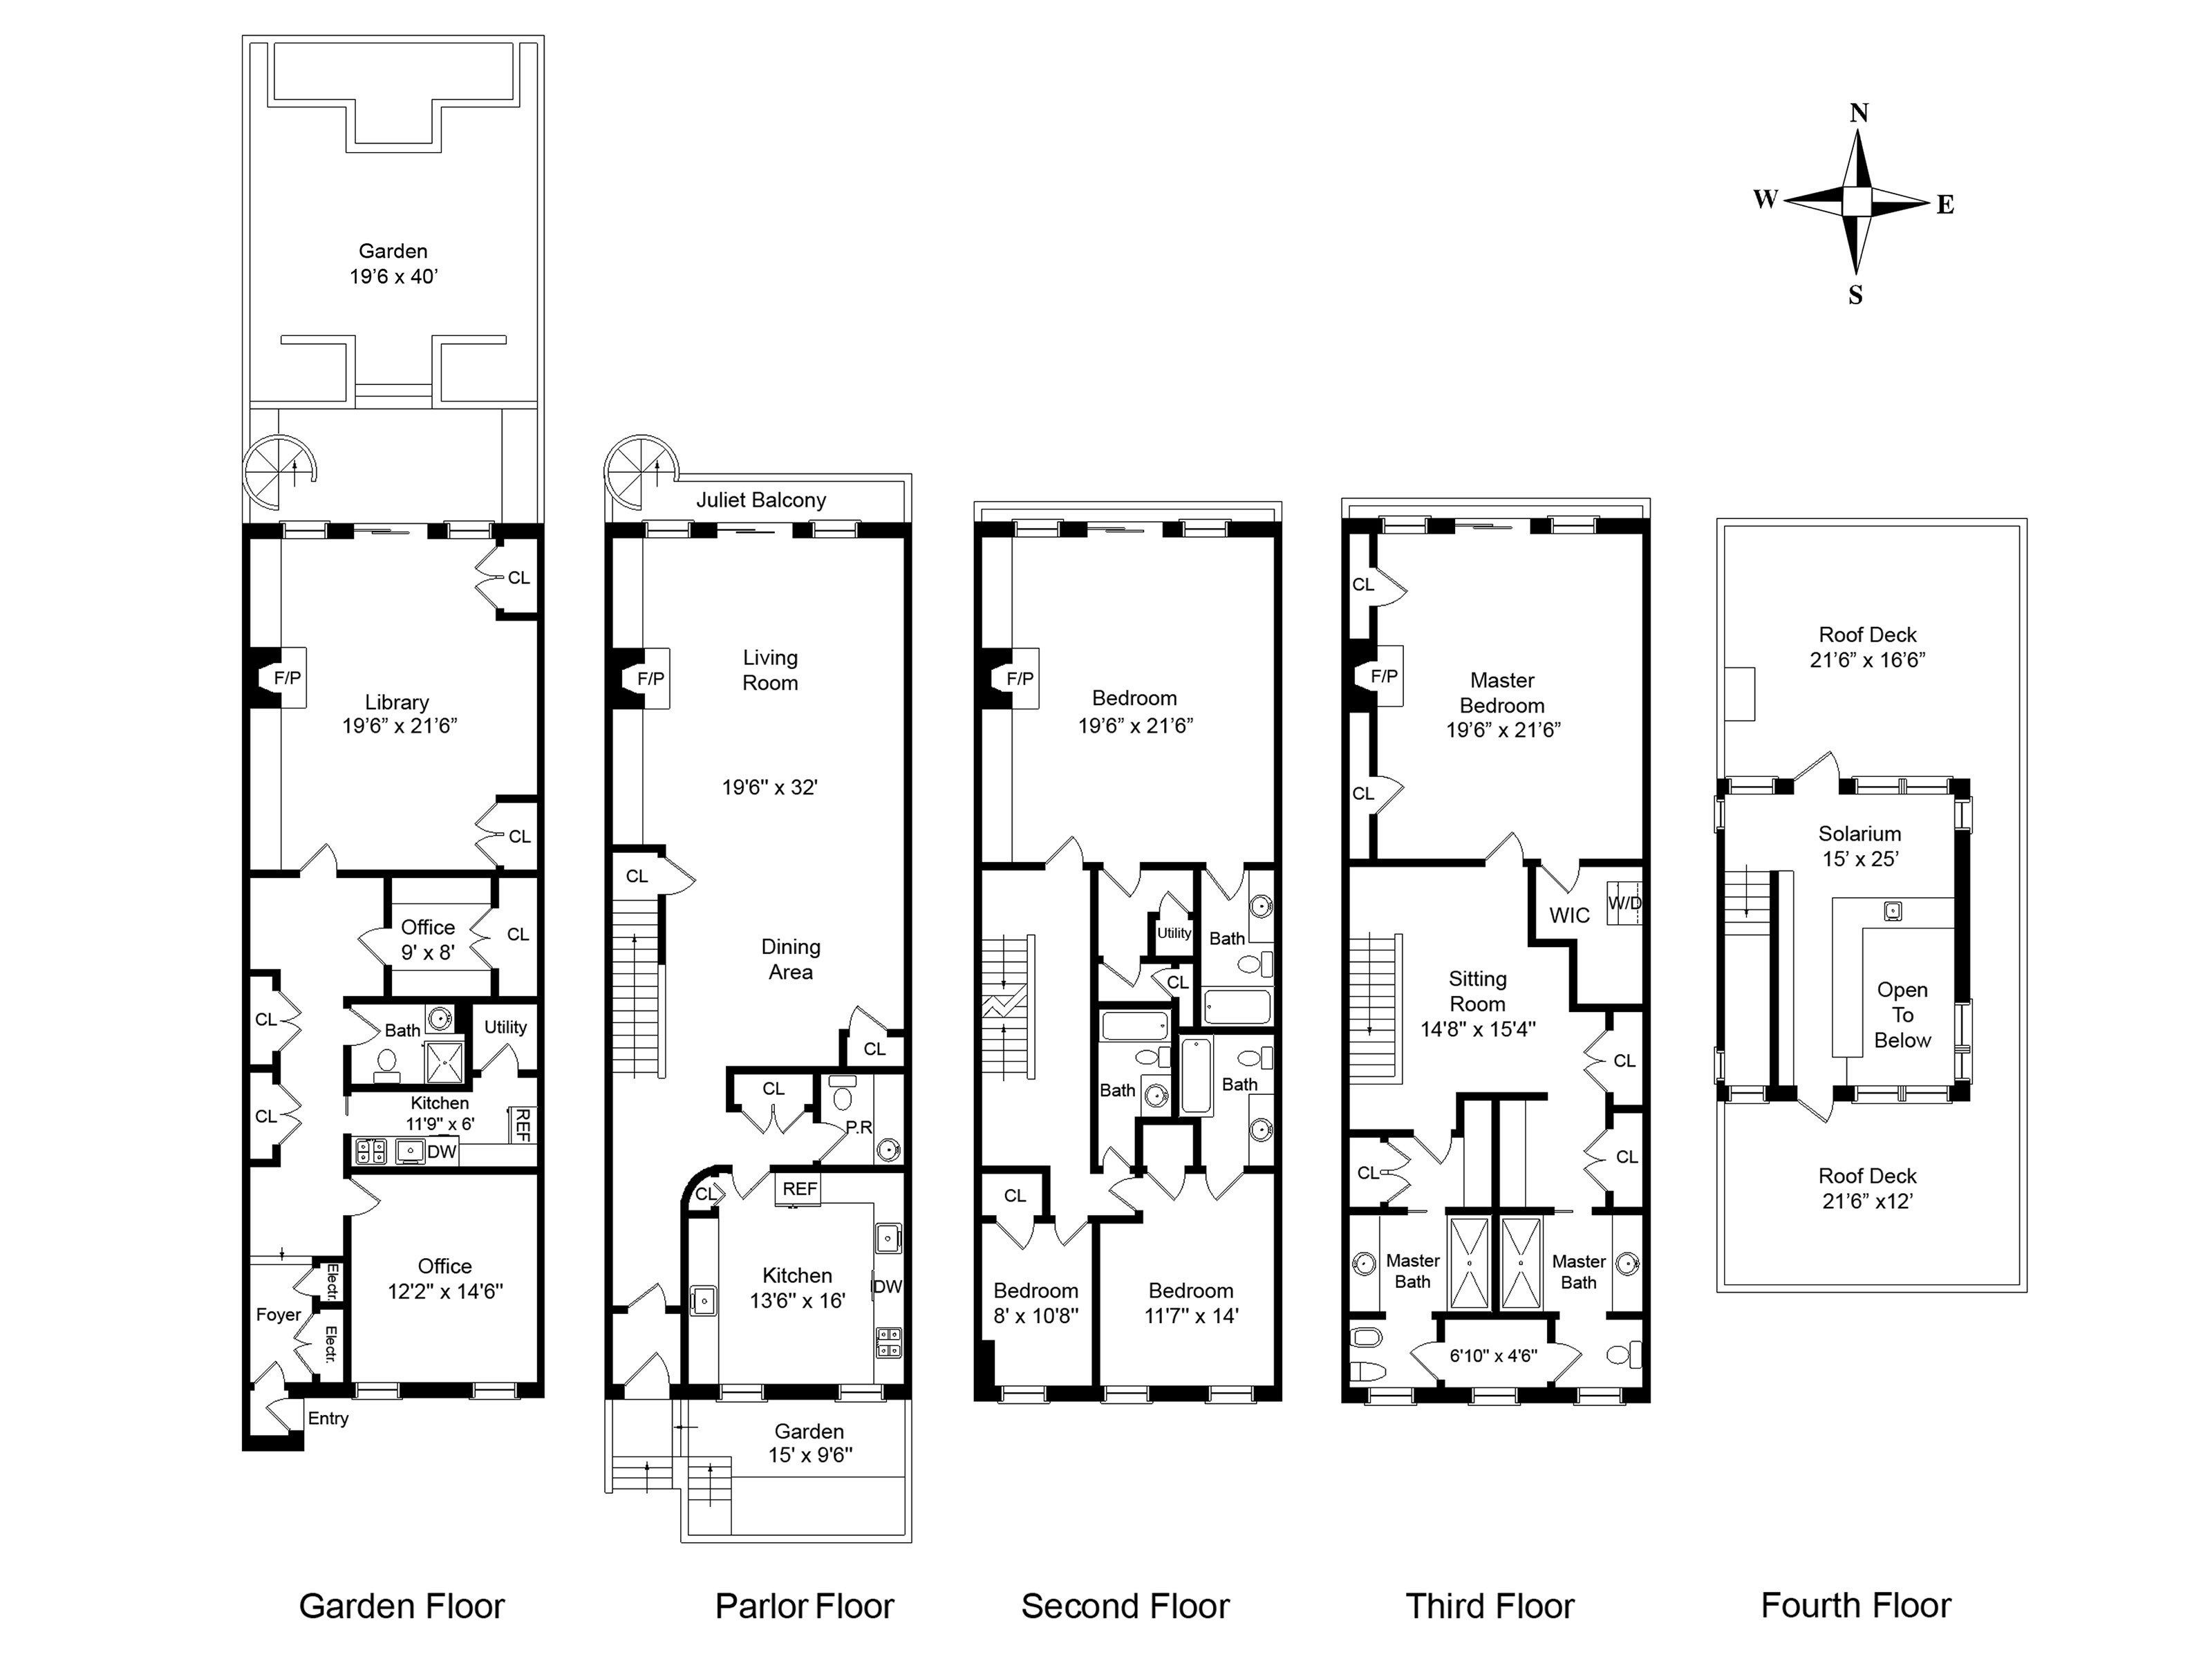 4 Bedroom Townhouse Floor Plans Of New York Townhouse Floor Plans House Plans Pinterest